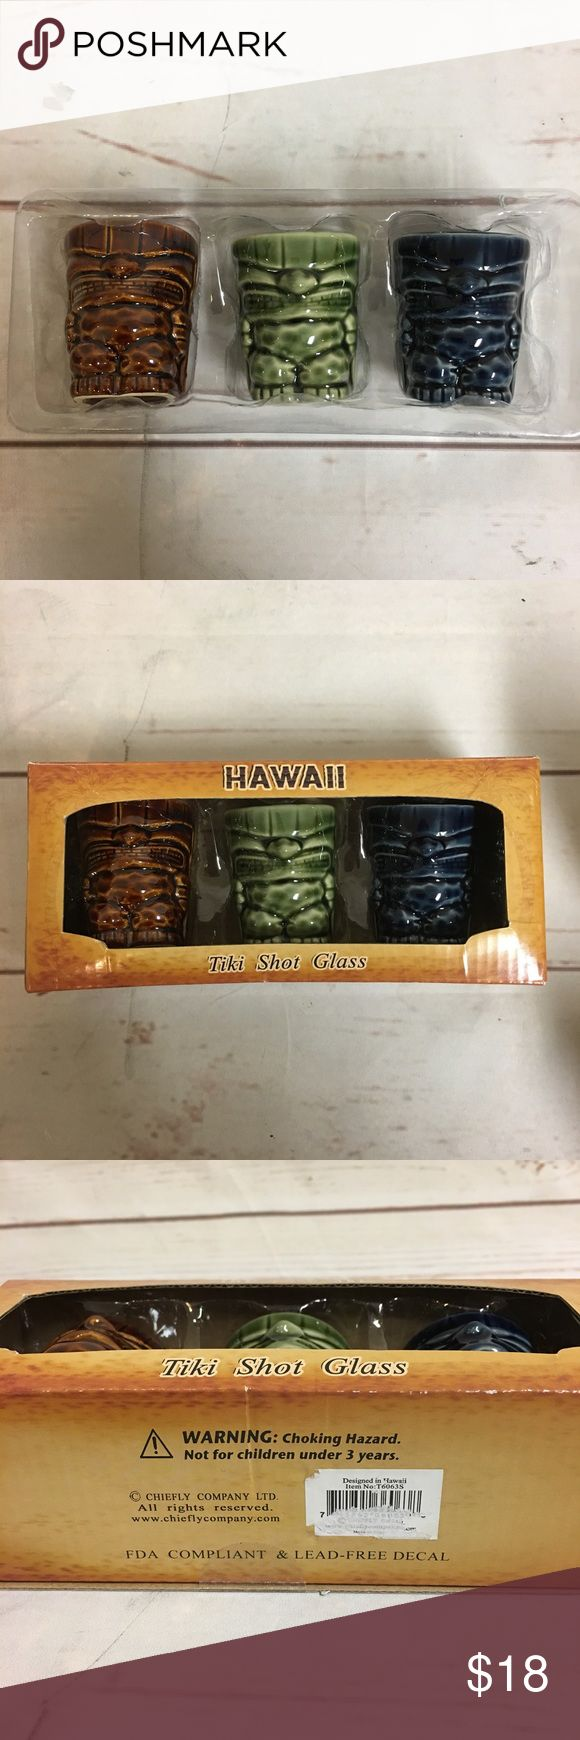 """NEW 3 TIKI MUG SHOT GLASSES Lucky Tiki Hawaii Shot Glasses   Lot of 3 Assorted Tiki Glasses  New in a box  Measures approx. 2.5""""T   Designed in Hawaii  FDA Compliant and Lead Free Decal  Traditional tiki shot glasses are perfect for your favorite island drinks! Also, makes a great addition to any party.   Made of ceramic Other"""